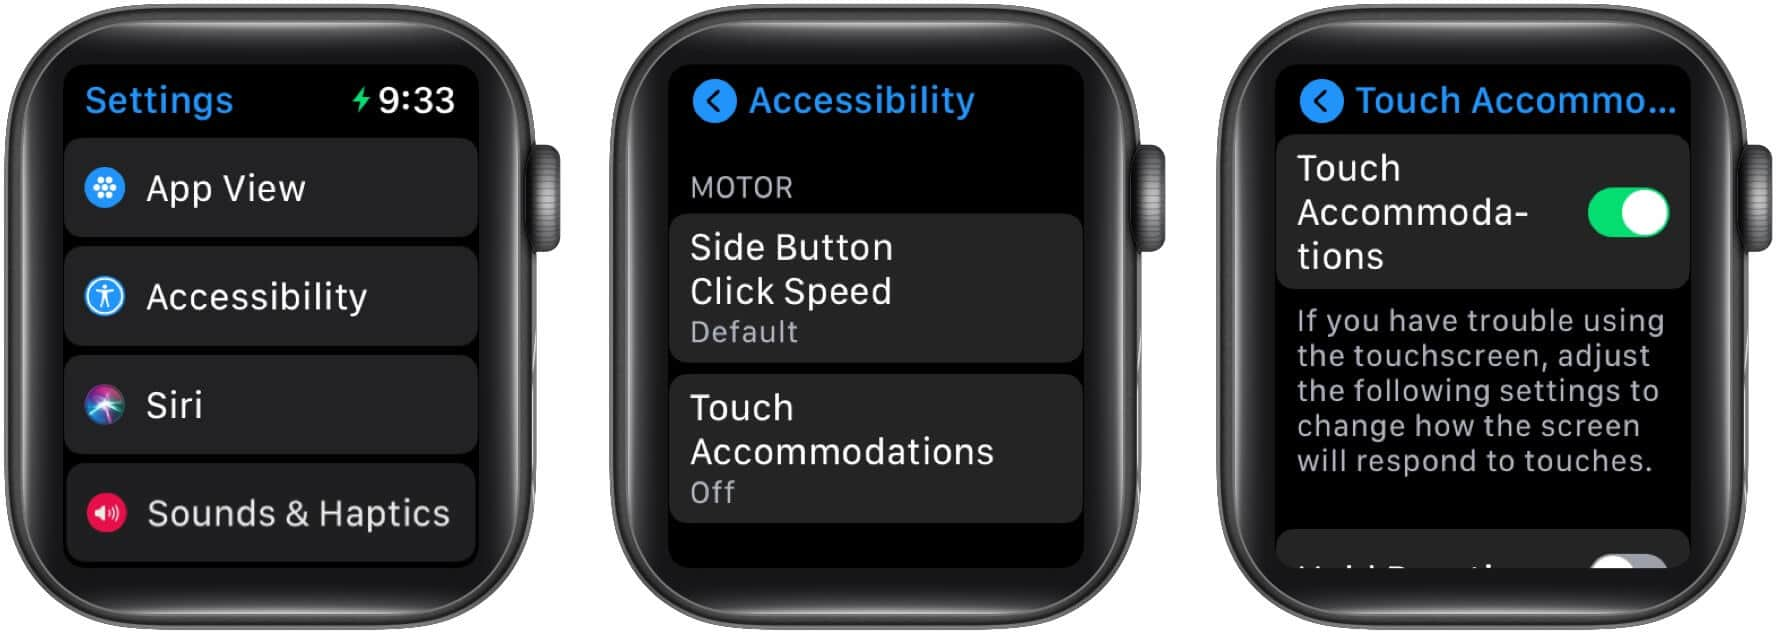 Toggle on TouchAccommodations on your Apple watch